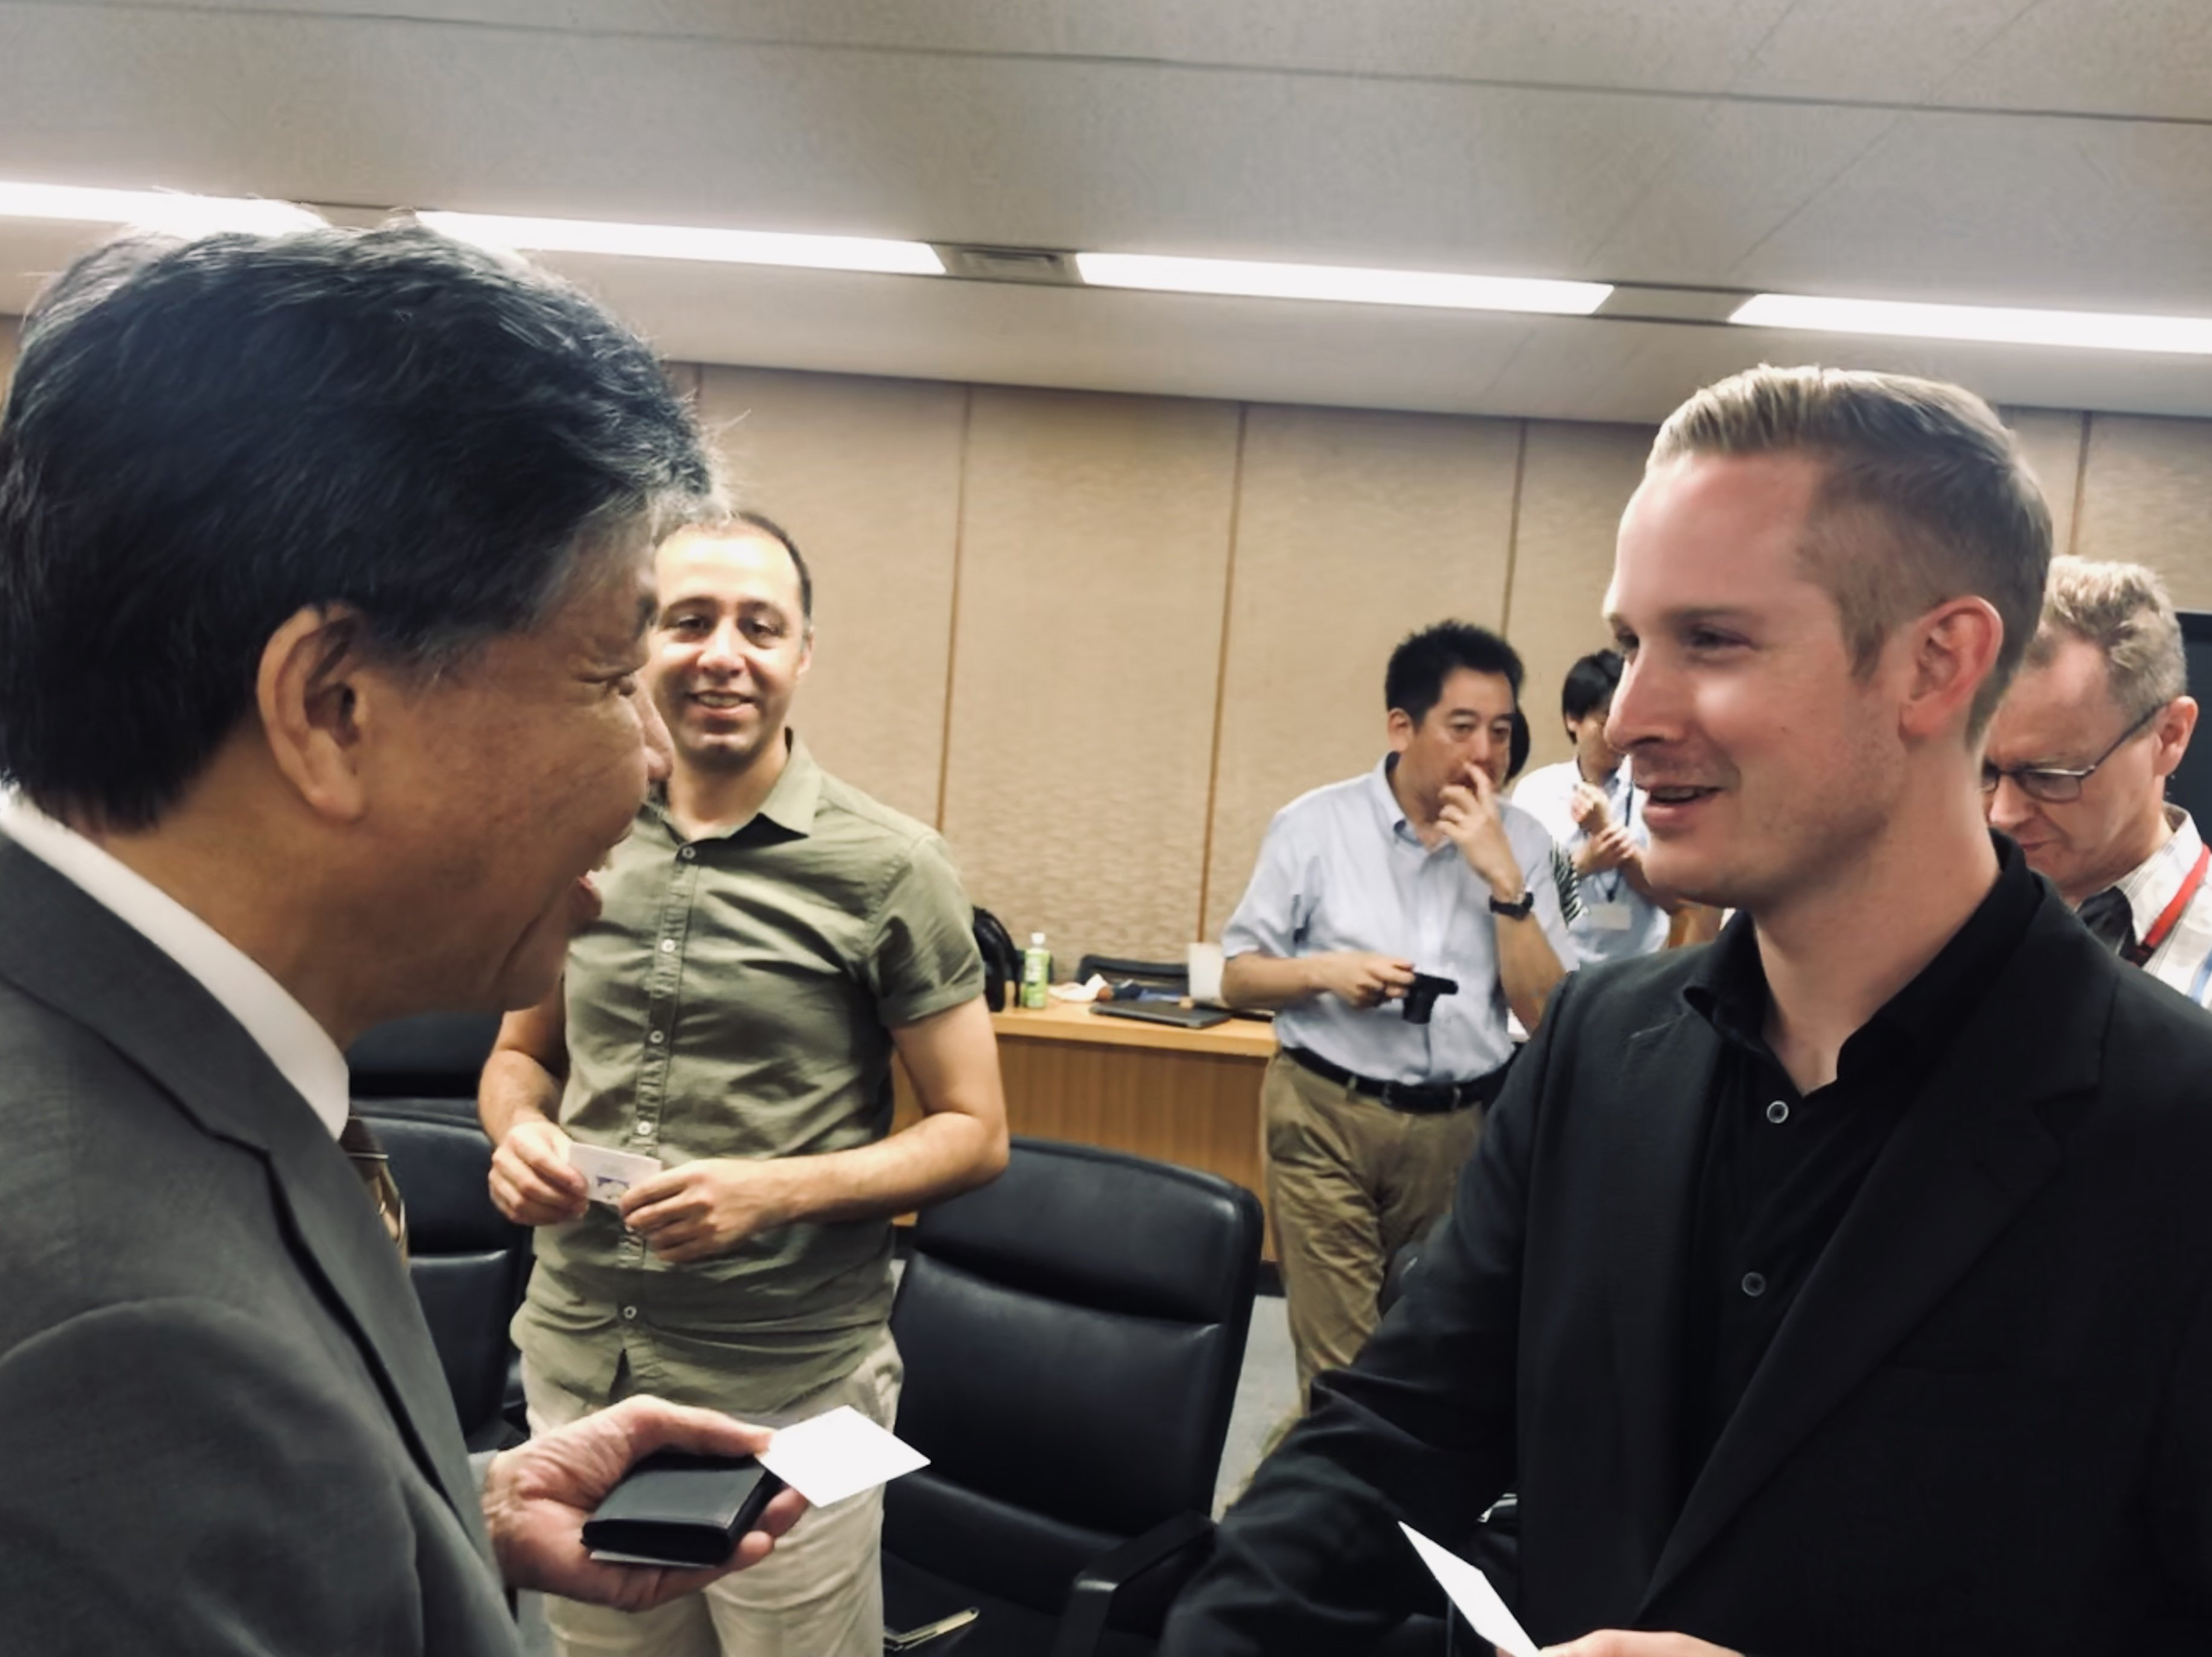 A Big Thank You To Kyoto Prefecture Vice-Governor Akimasa Yamashita For An Interesting Conversation About Start-up Support In Kyoto And How Novel Uses Of Cutting Edge AI Will Keep Kyoto's DNA Of Innovation Going.